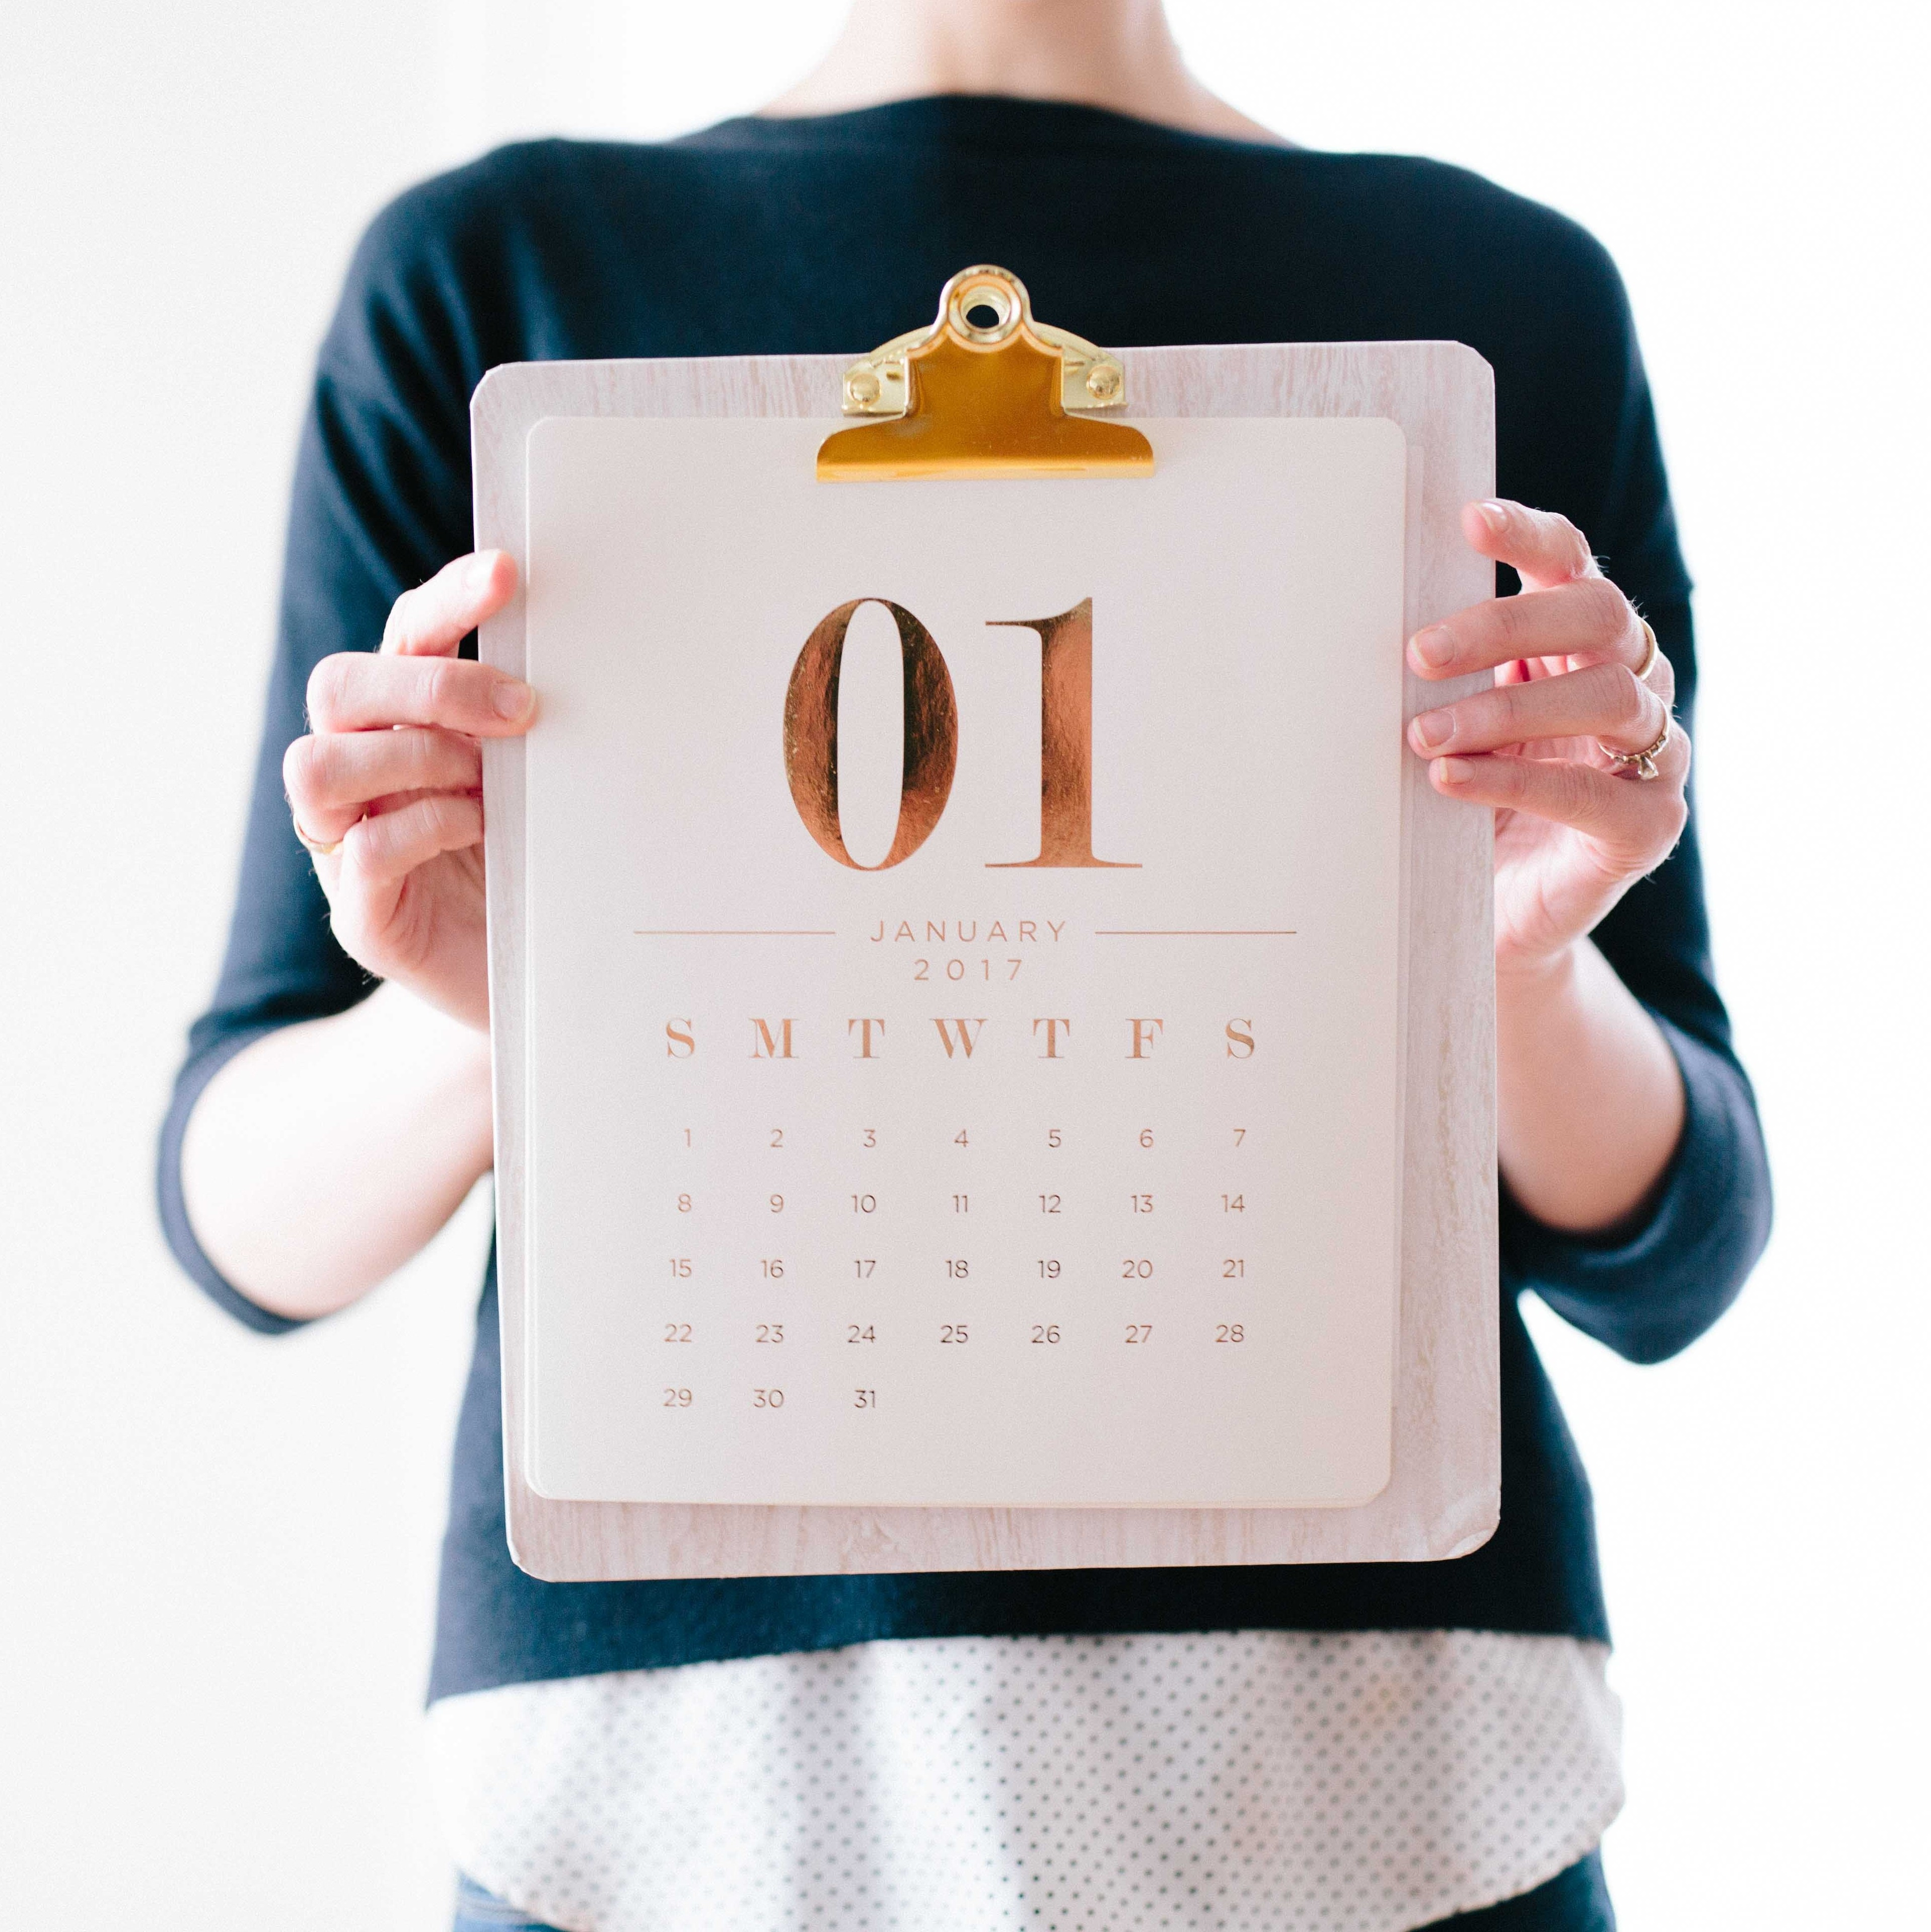 Nine Ways To Refresh And Organize Your Small Business In The inside University Of Rhosde Island Calendar 20-21